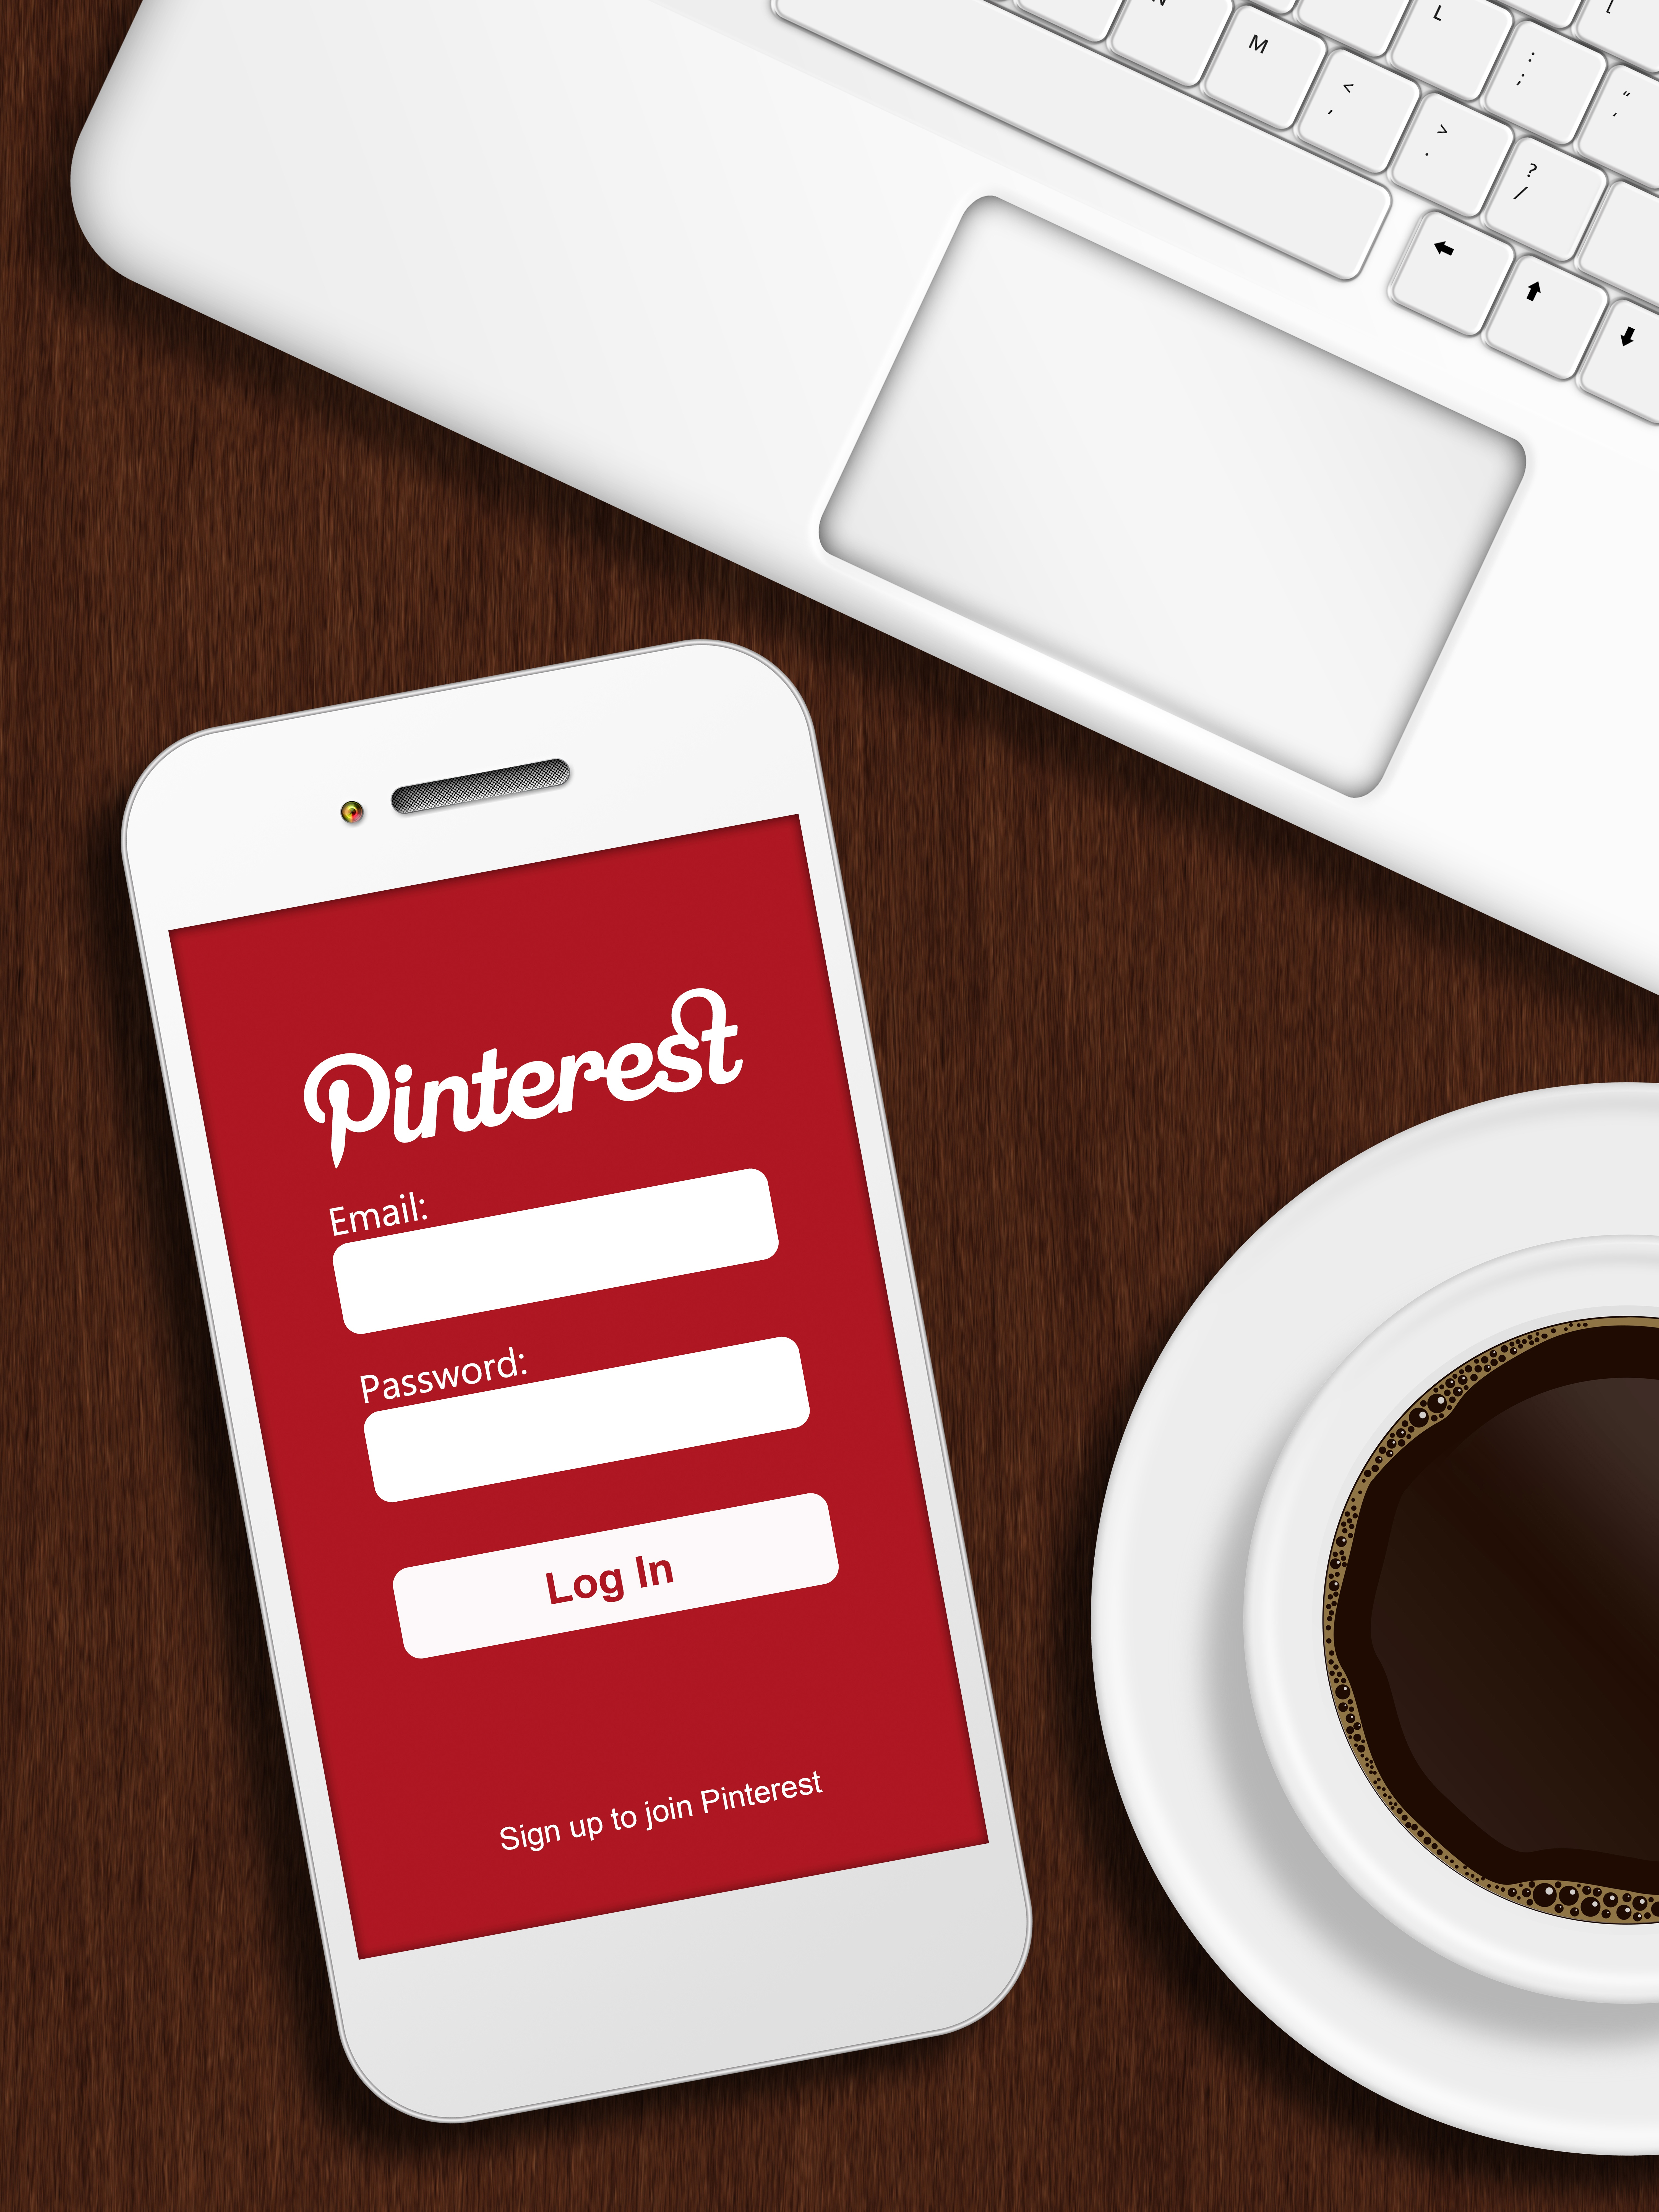 8 Things to Remember About Marketing on Pinterest